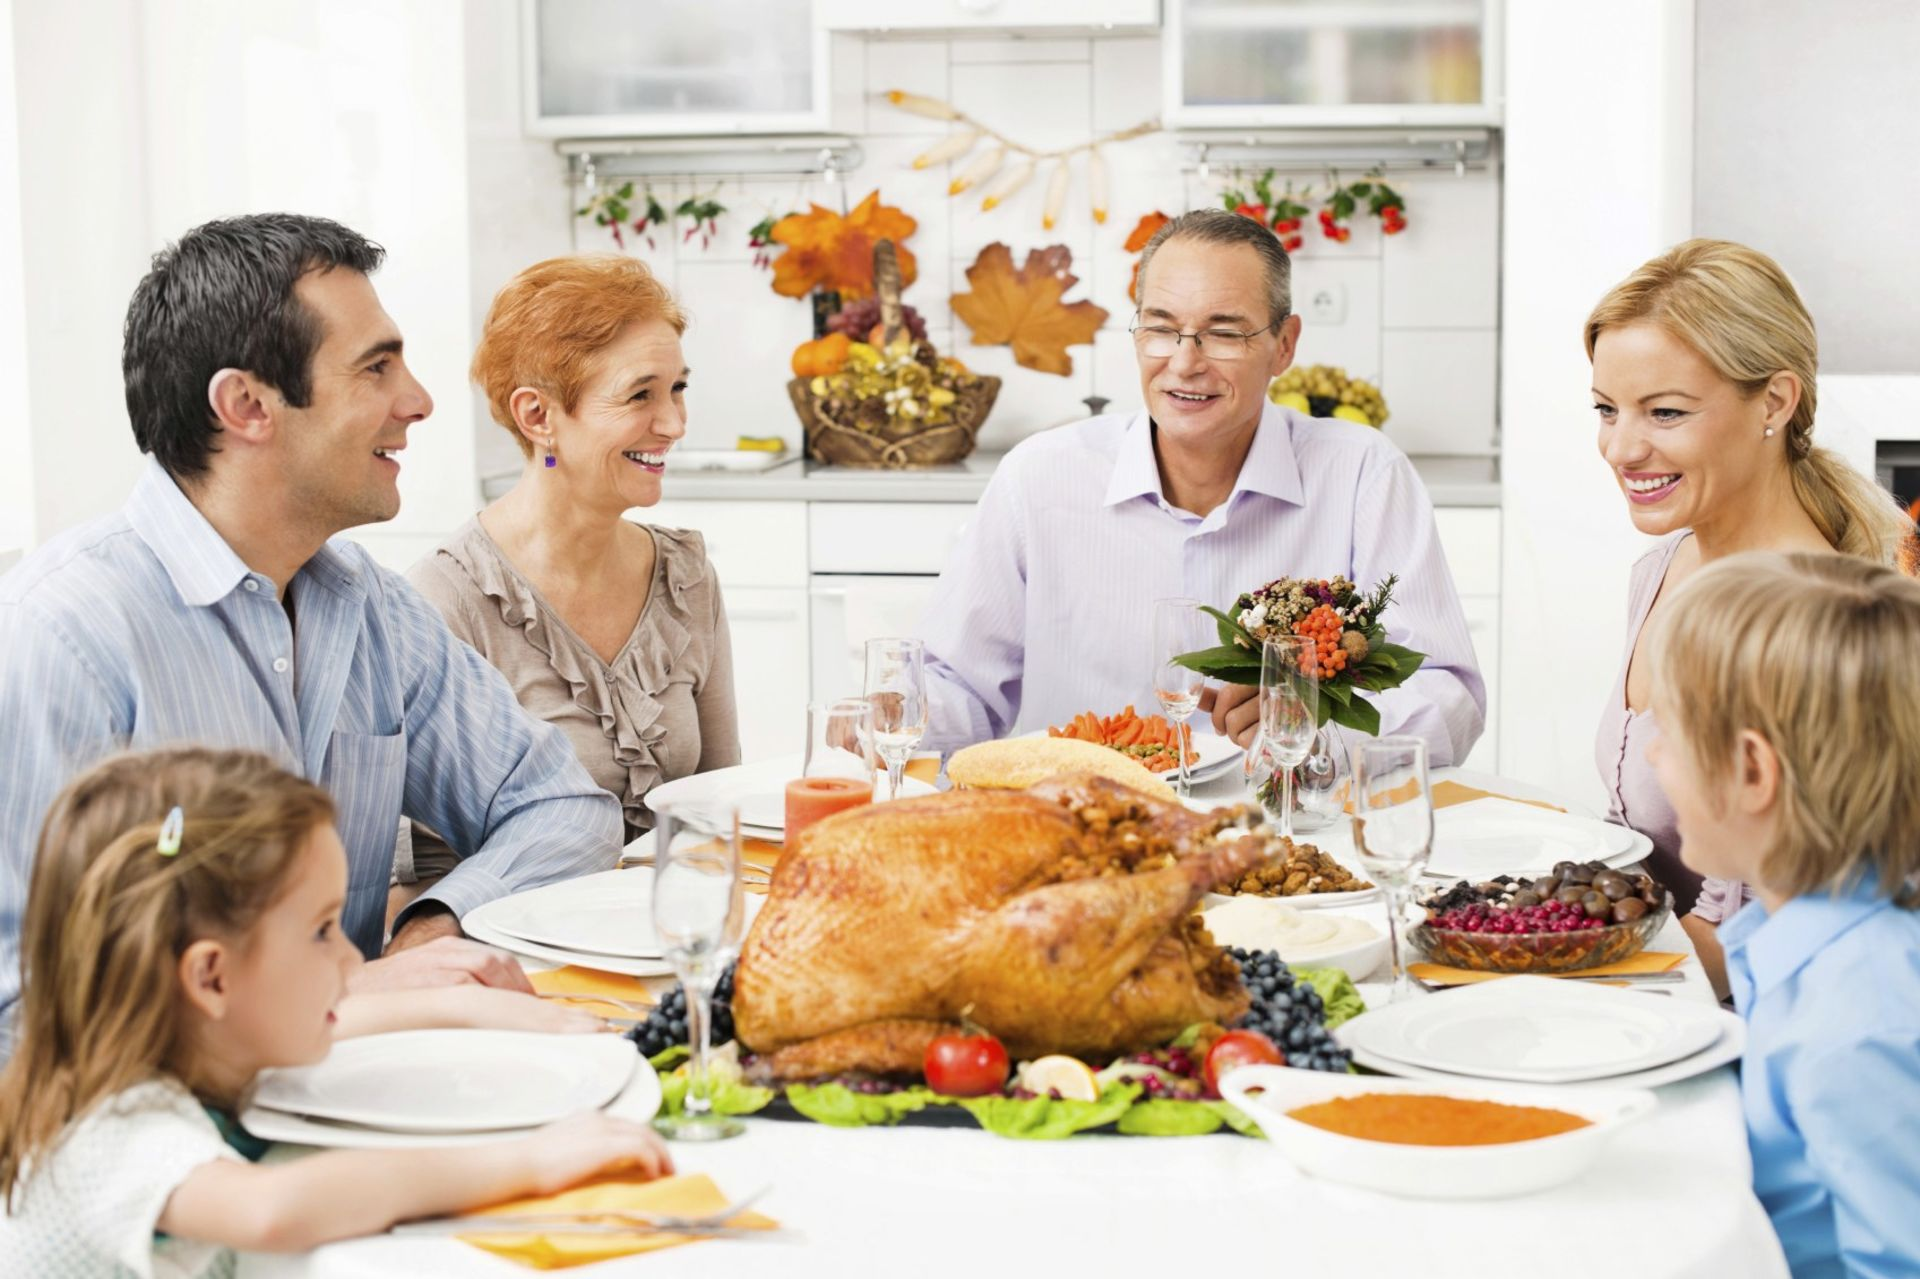 6 Simple Steps to Prep Your Home for Holiday Guests